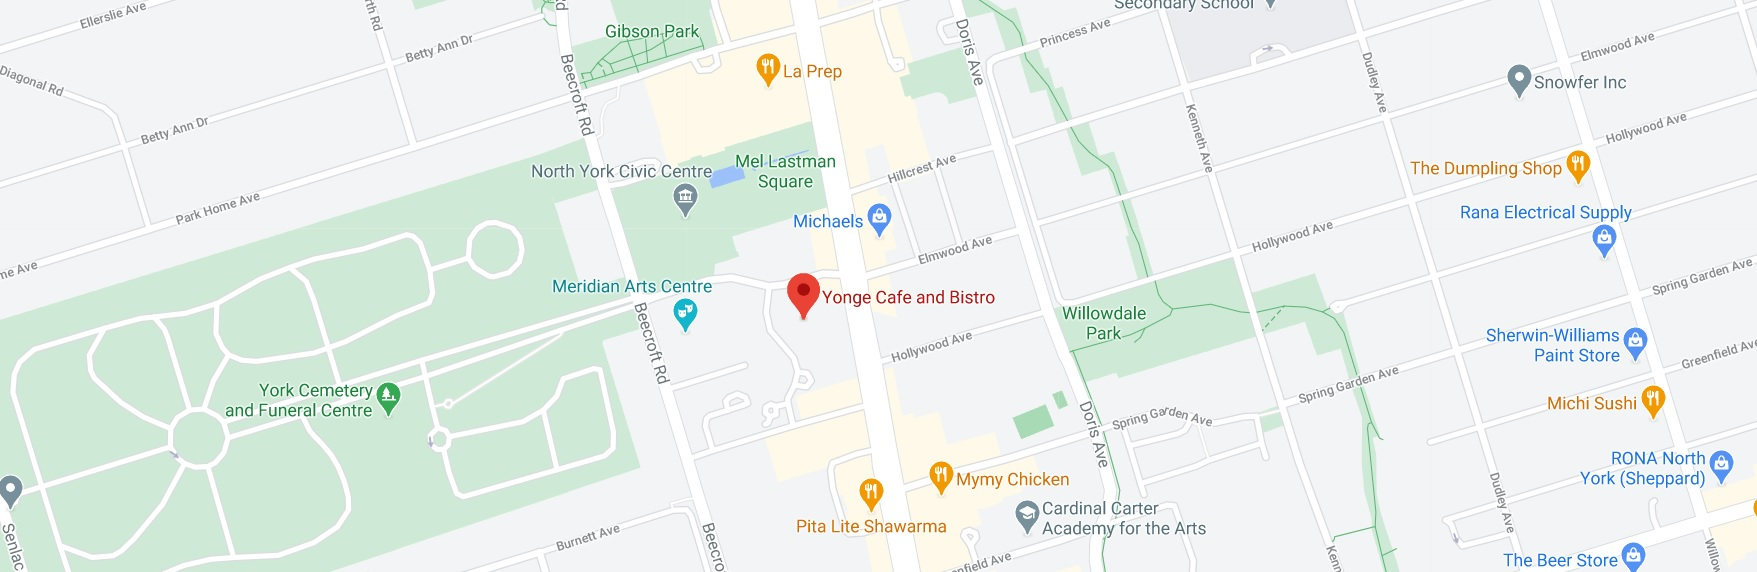 Yonge Cafe and Bistro